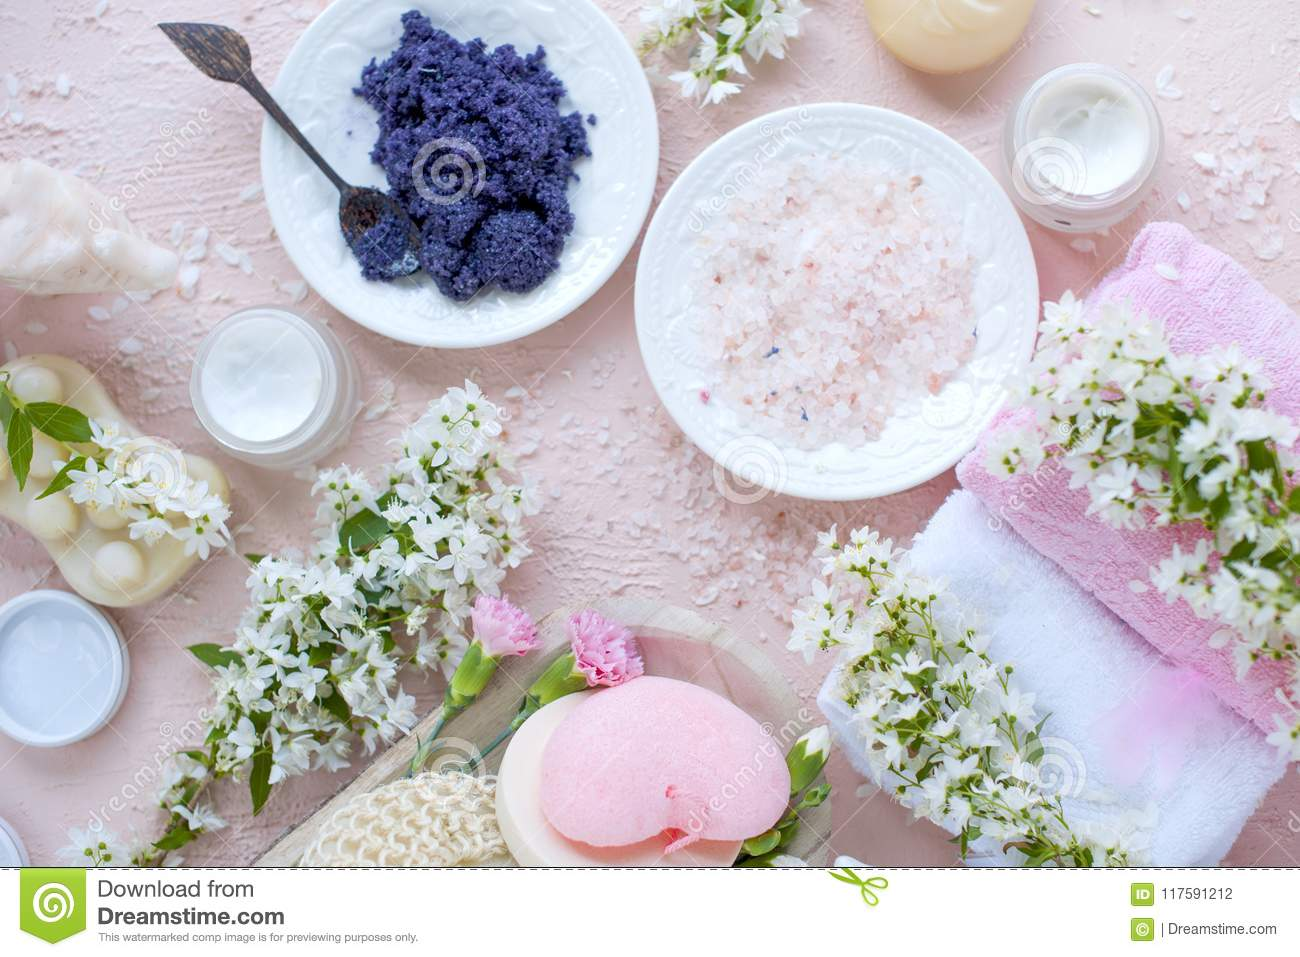 Spa different cosmetics for care and beauty pink background and different cosmetics for care and beauty pink background and white flowers mightylinksfo